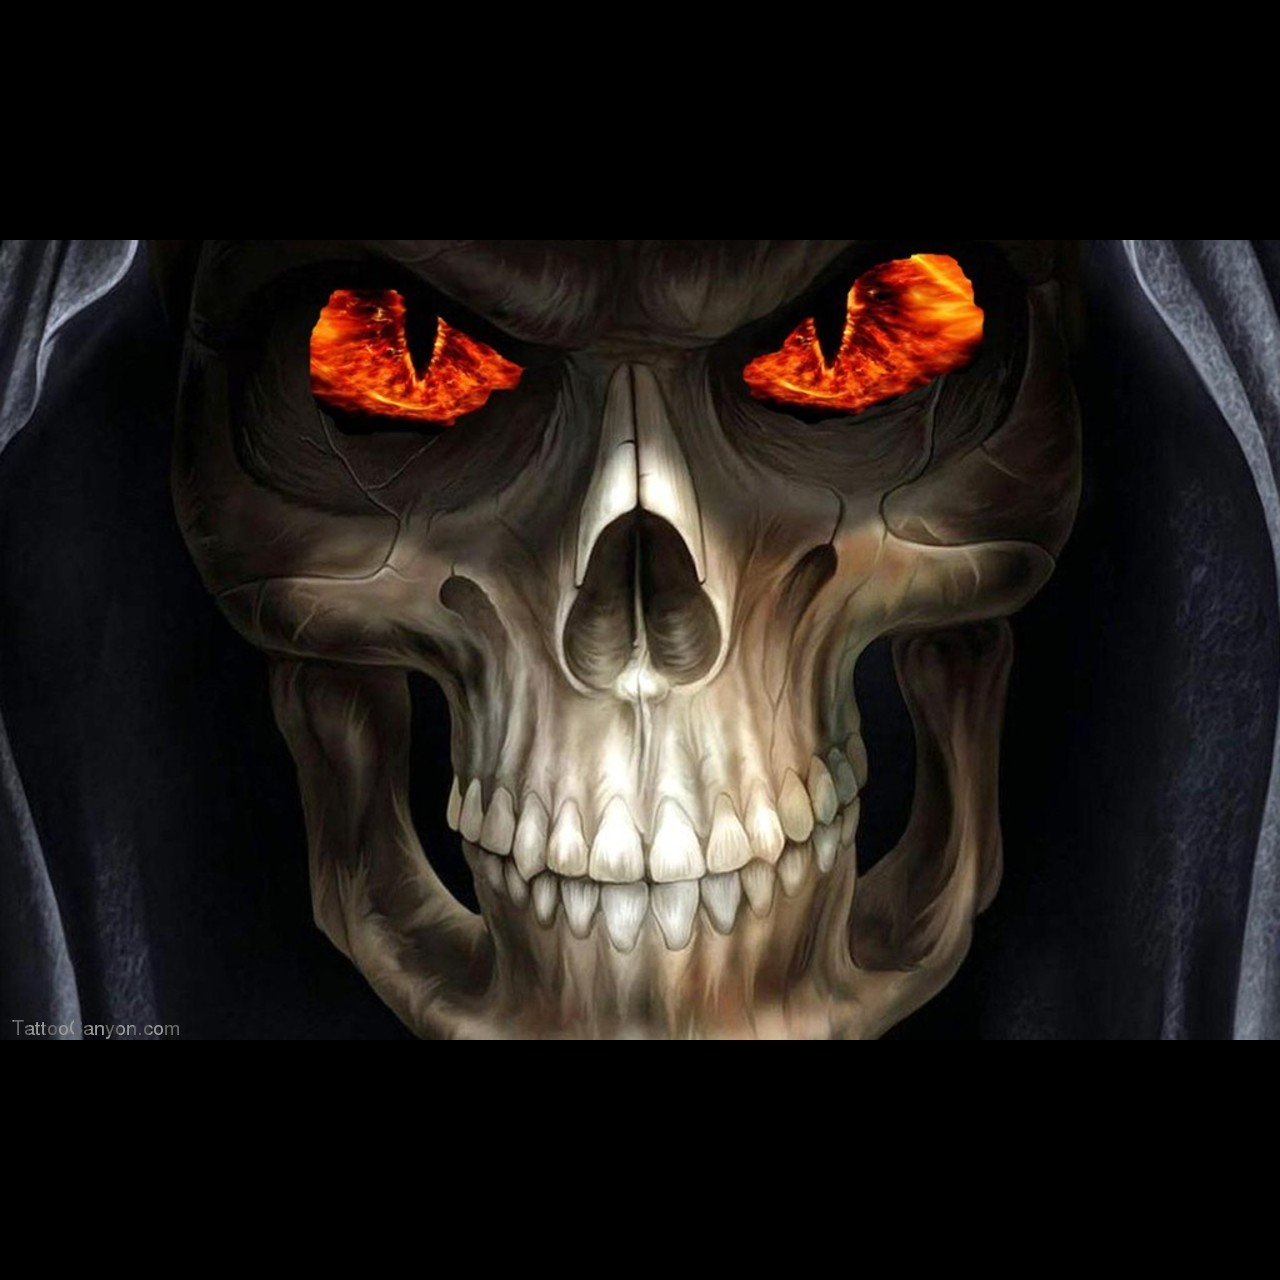 Grim Reaper Horror Skull Wallpaper Download Tattoo 32843 Picture 1280x1280